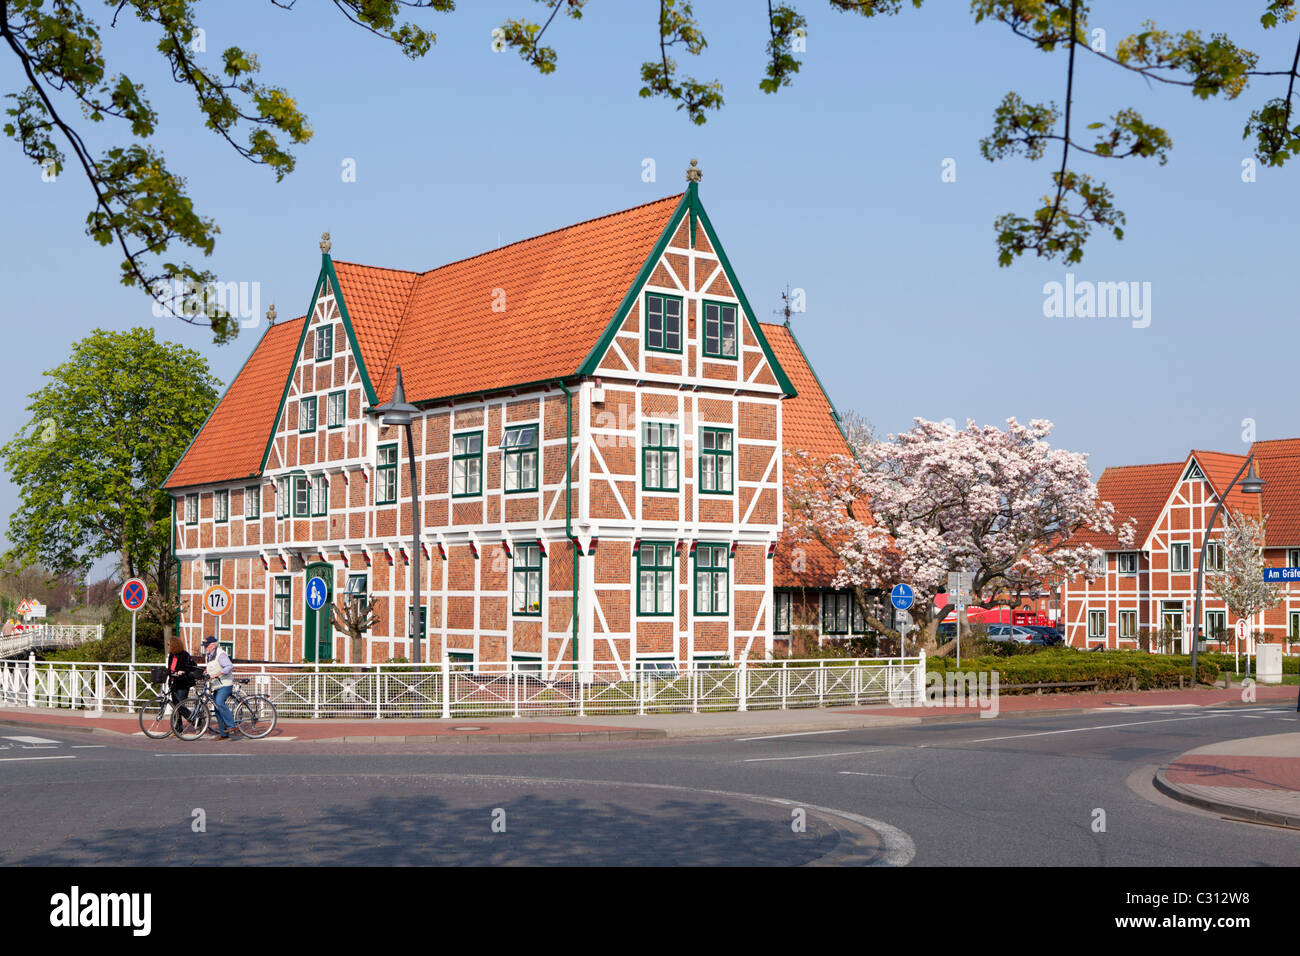 town hall in jork altes land old land near hamburg lower saxony stock photo royalty free. Black Bedroom Furniture Sets. Home Design Ideas